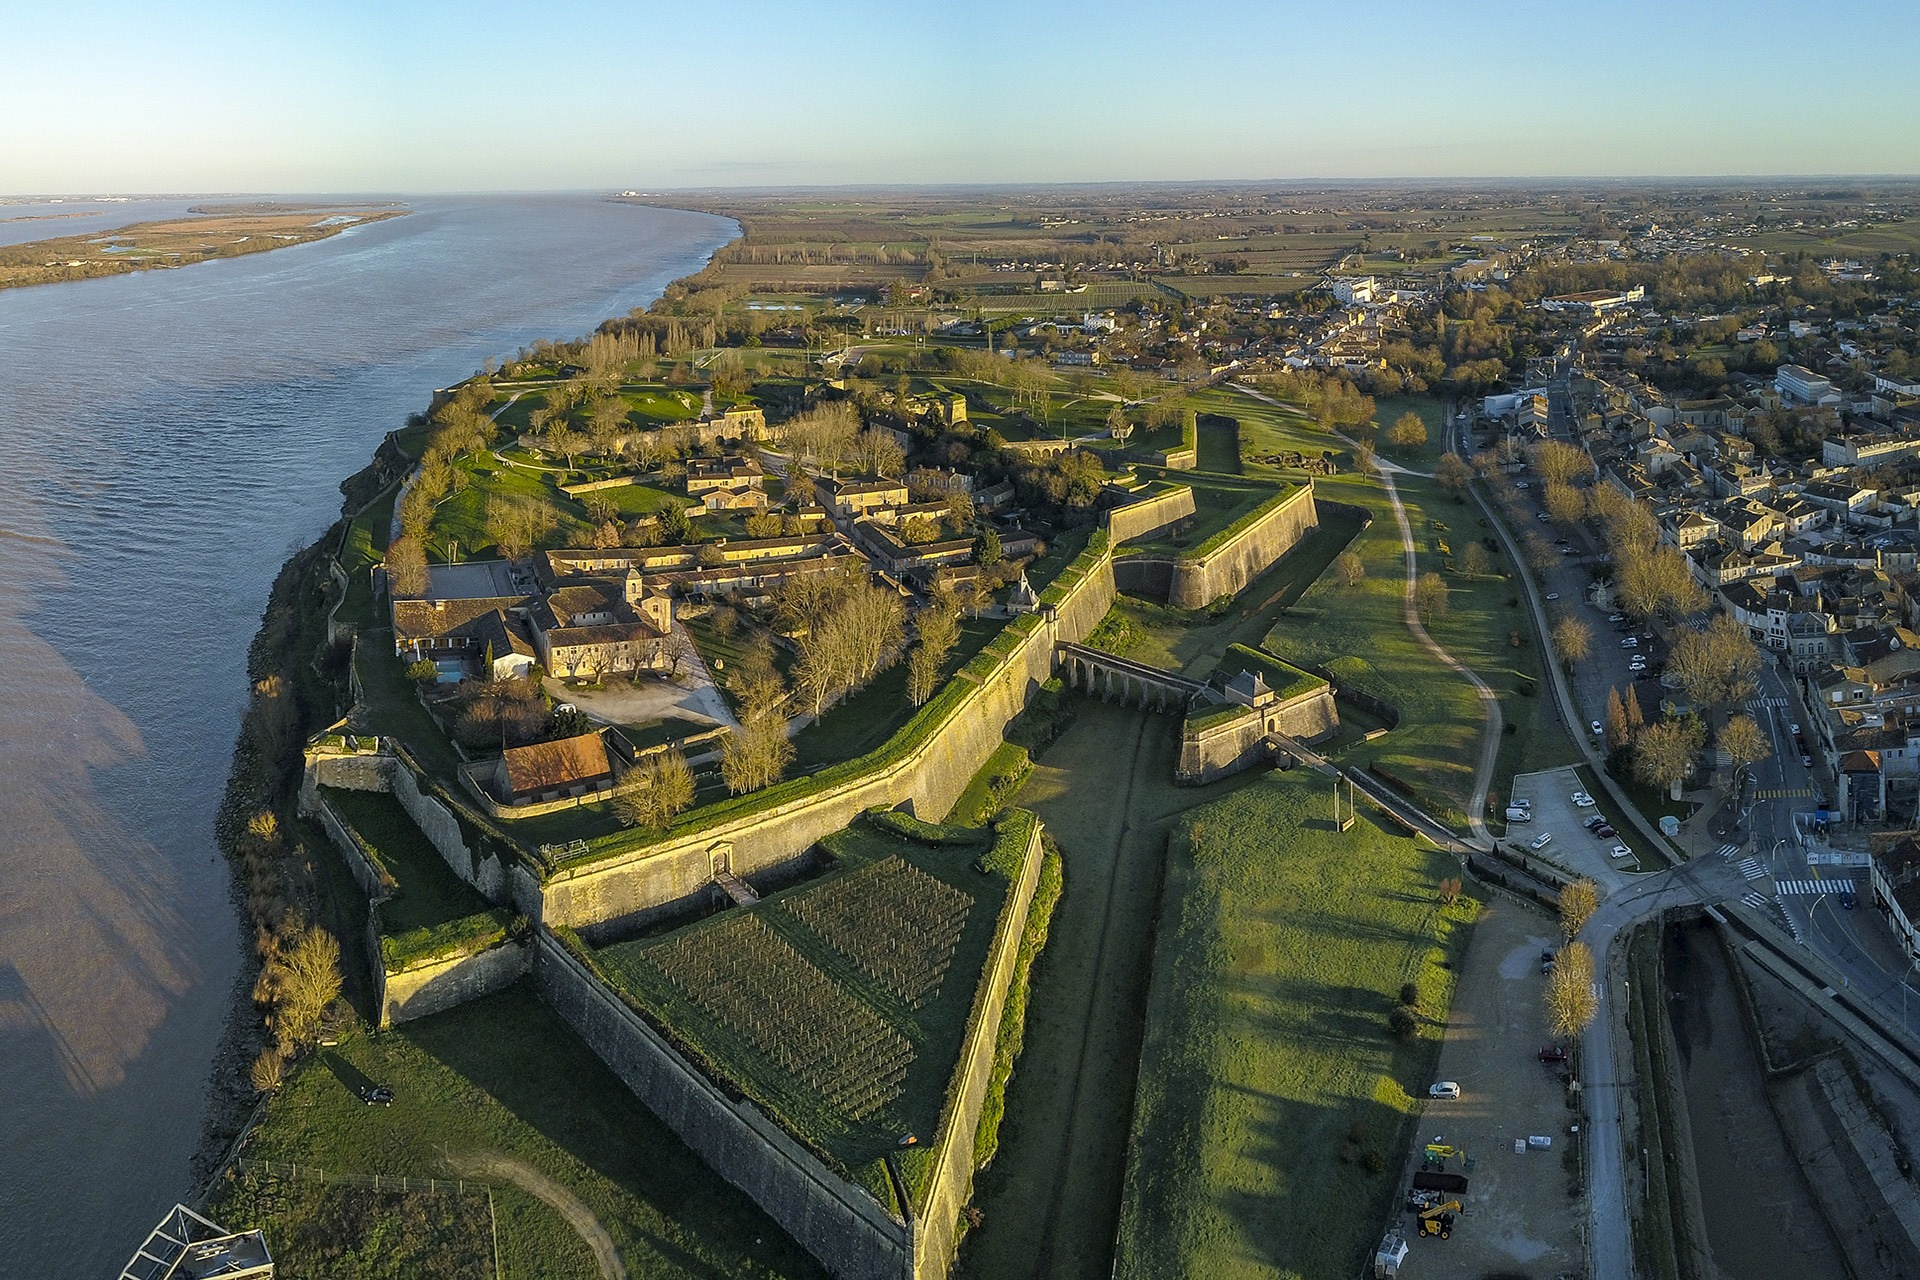 Aerial view, Blaye Citadel, UNESCO world heritage site in Gironde, Aquitaine, France